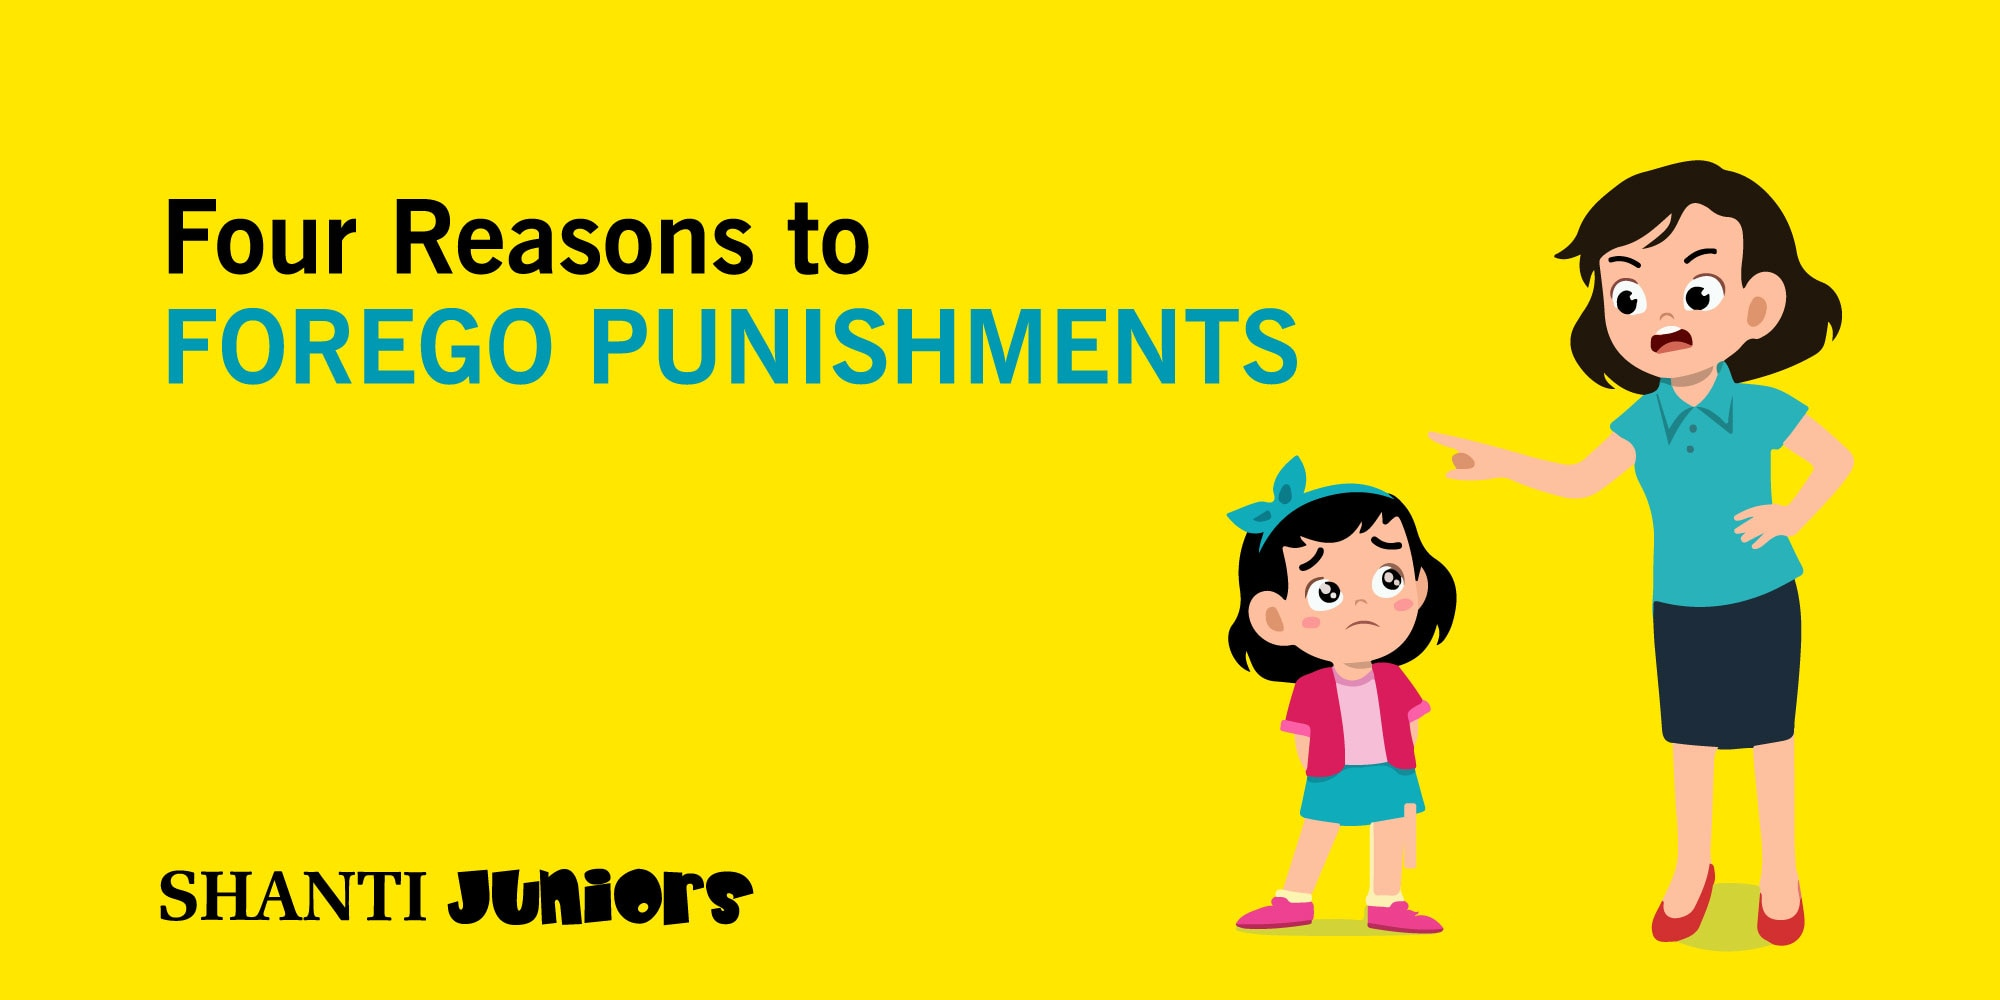 Four Reasons to Forego Punishments